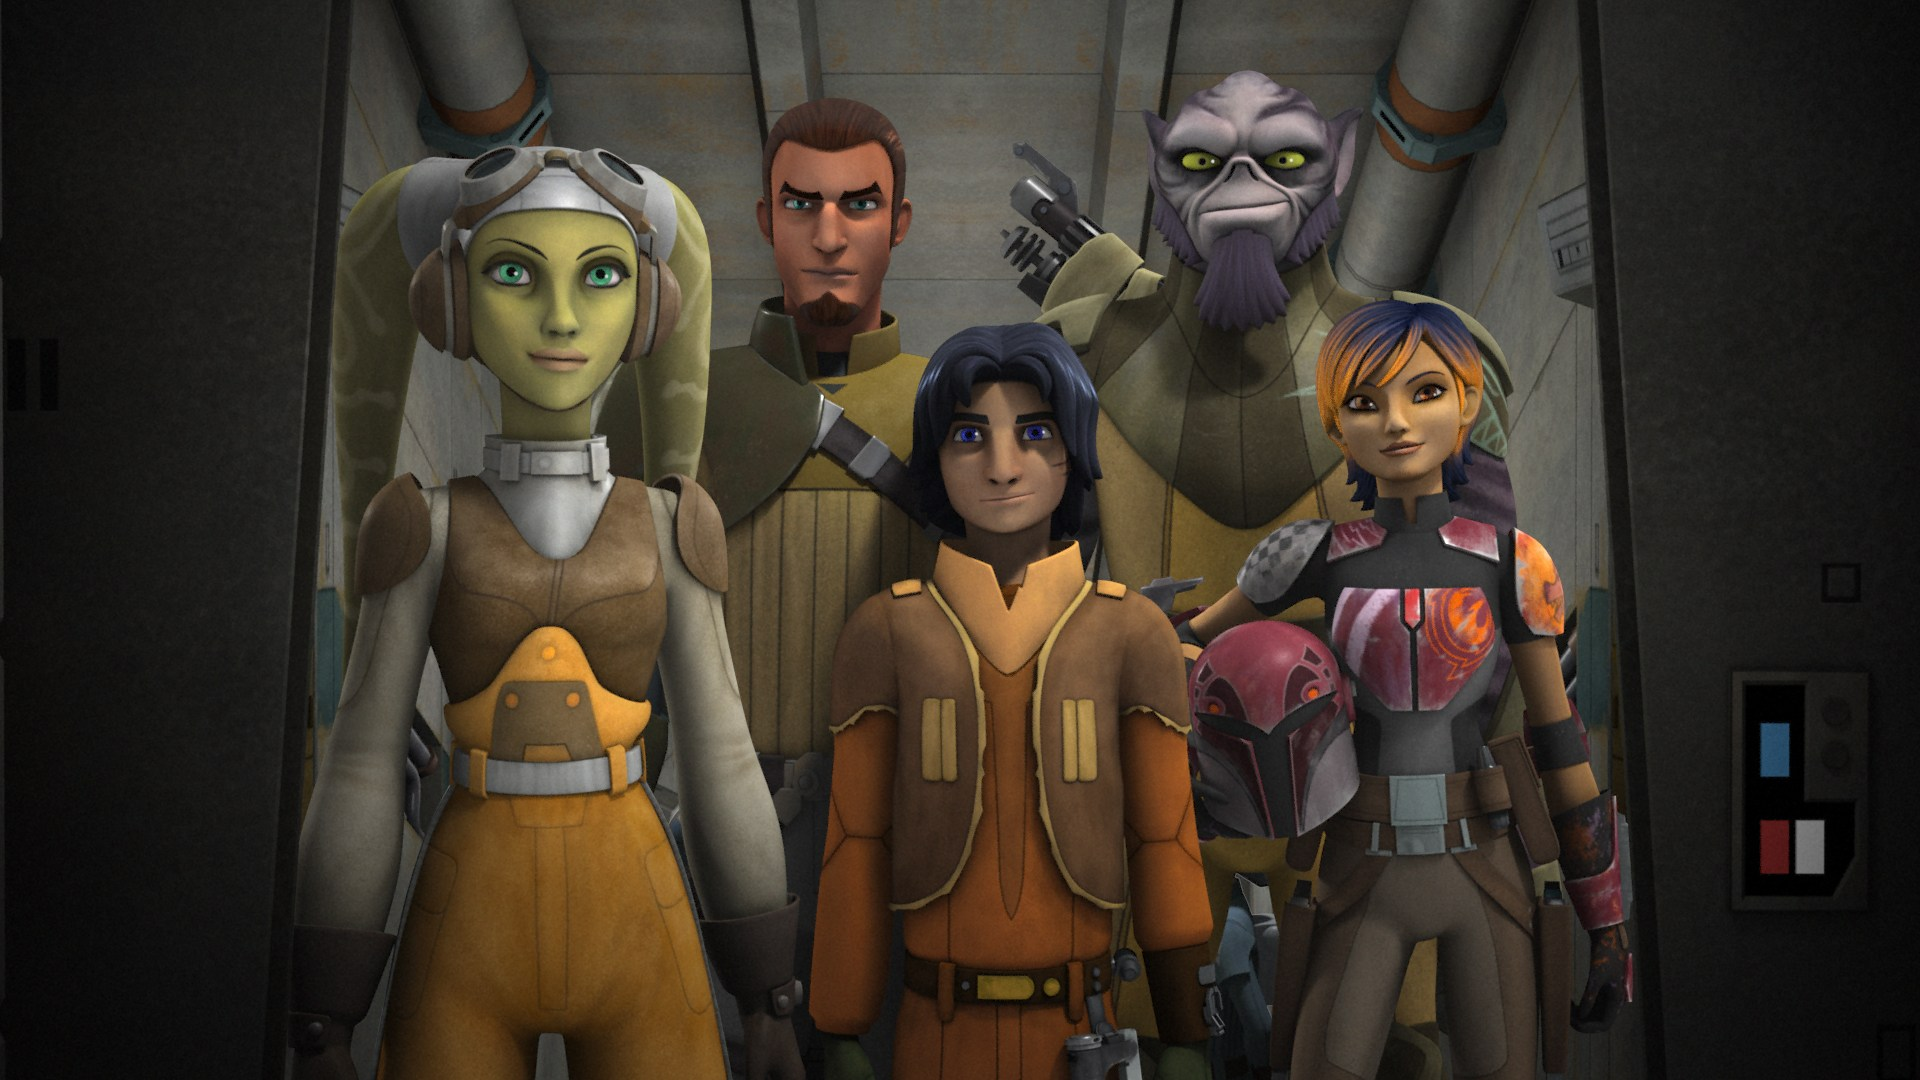 Star-Wars-Rebels-Group-Image